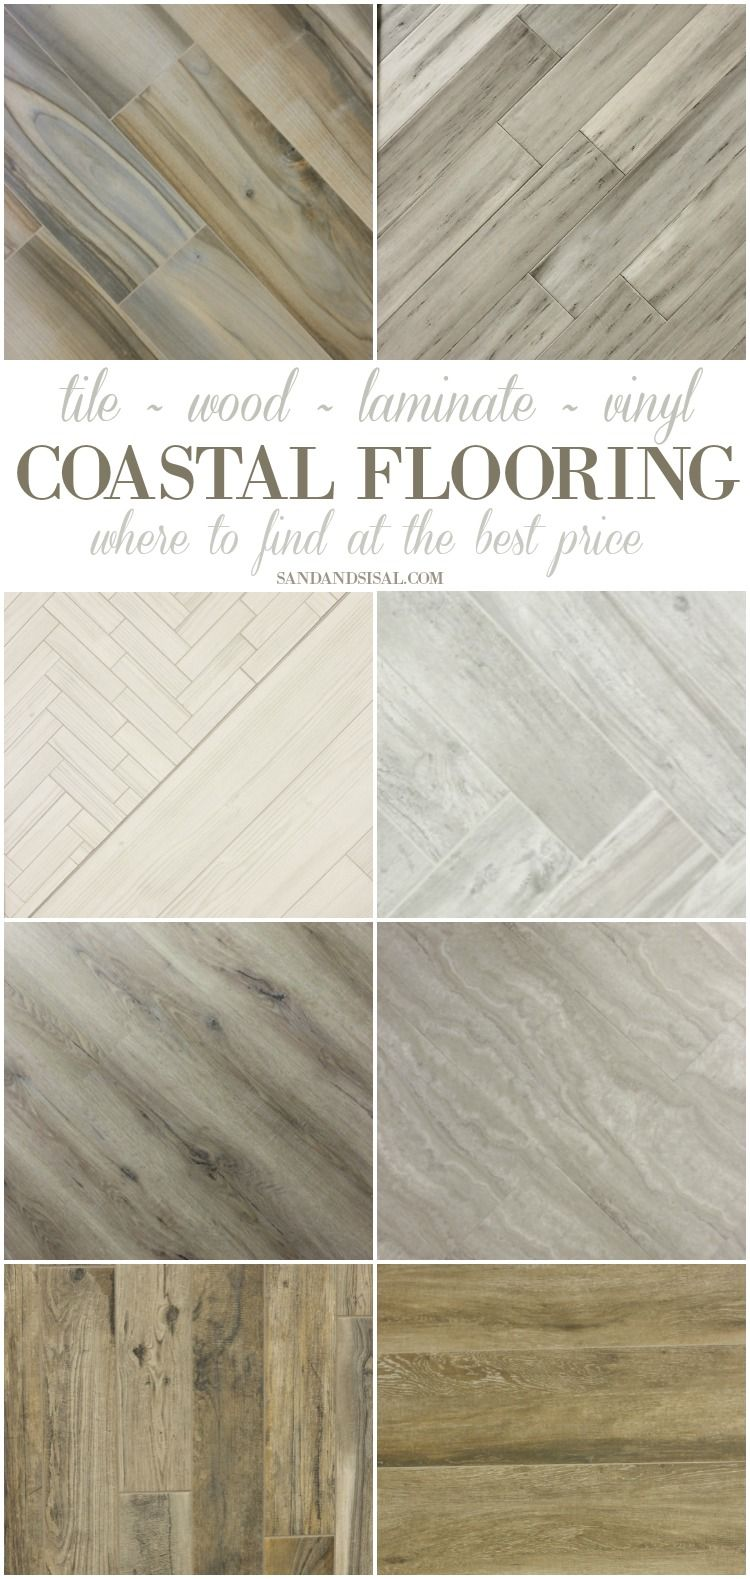 Coastal flooring ideas where to get premium tile hardwood laminate and luxury vinyl